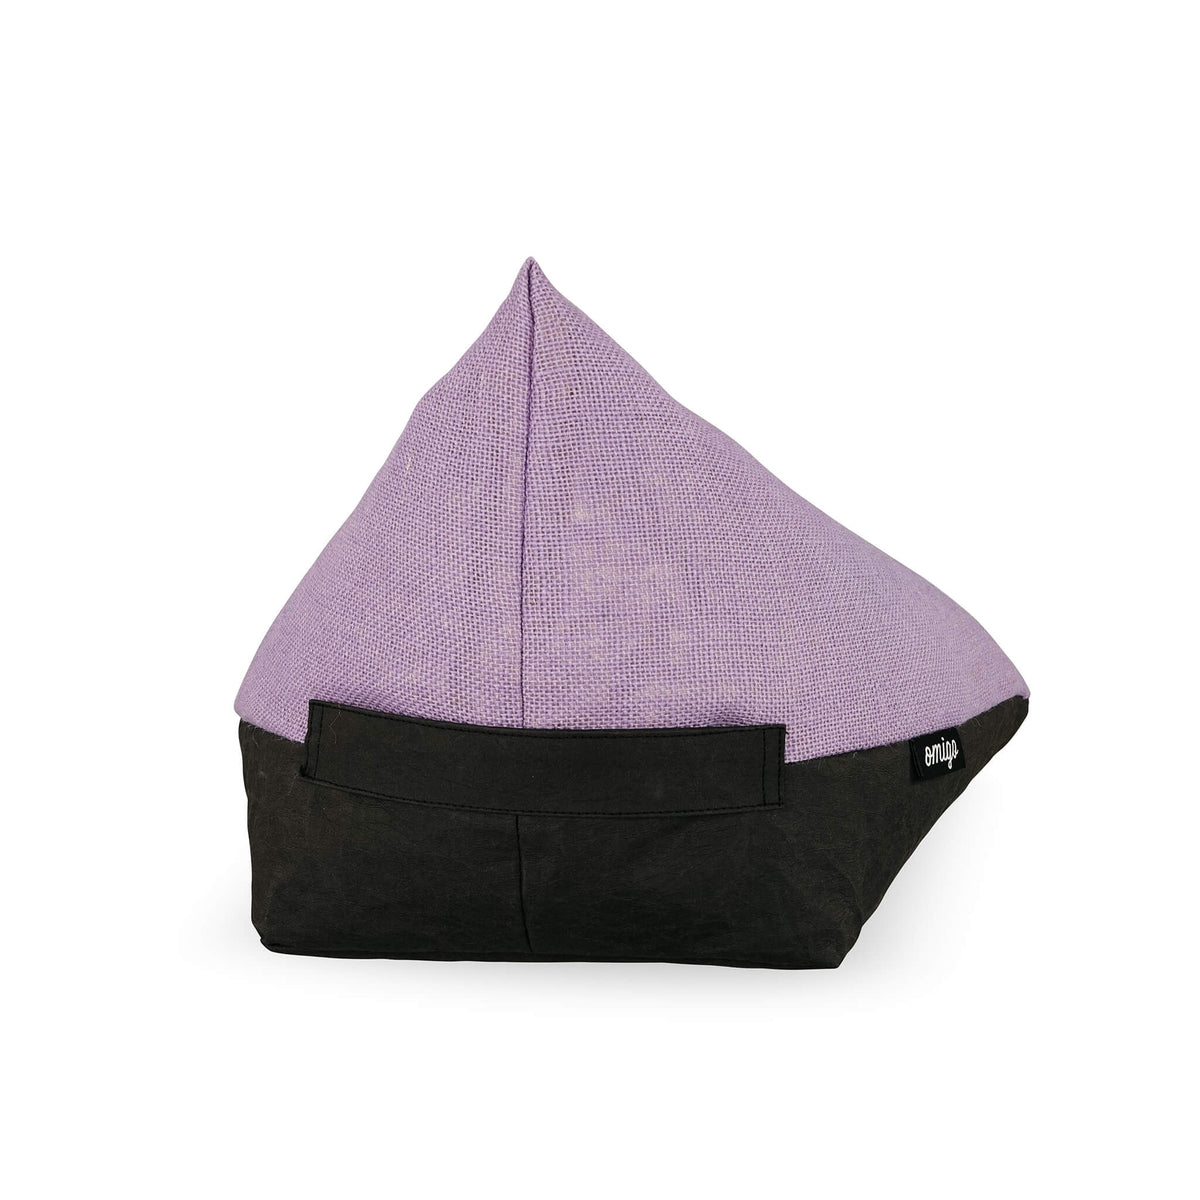 meditation cushion with black vegan leather base and purple hemp top